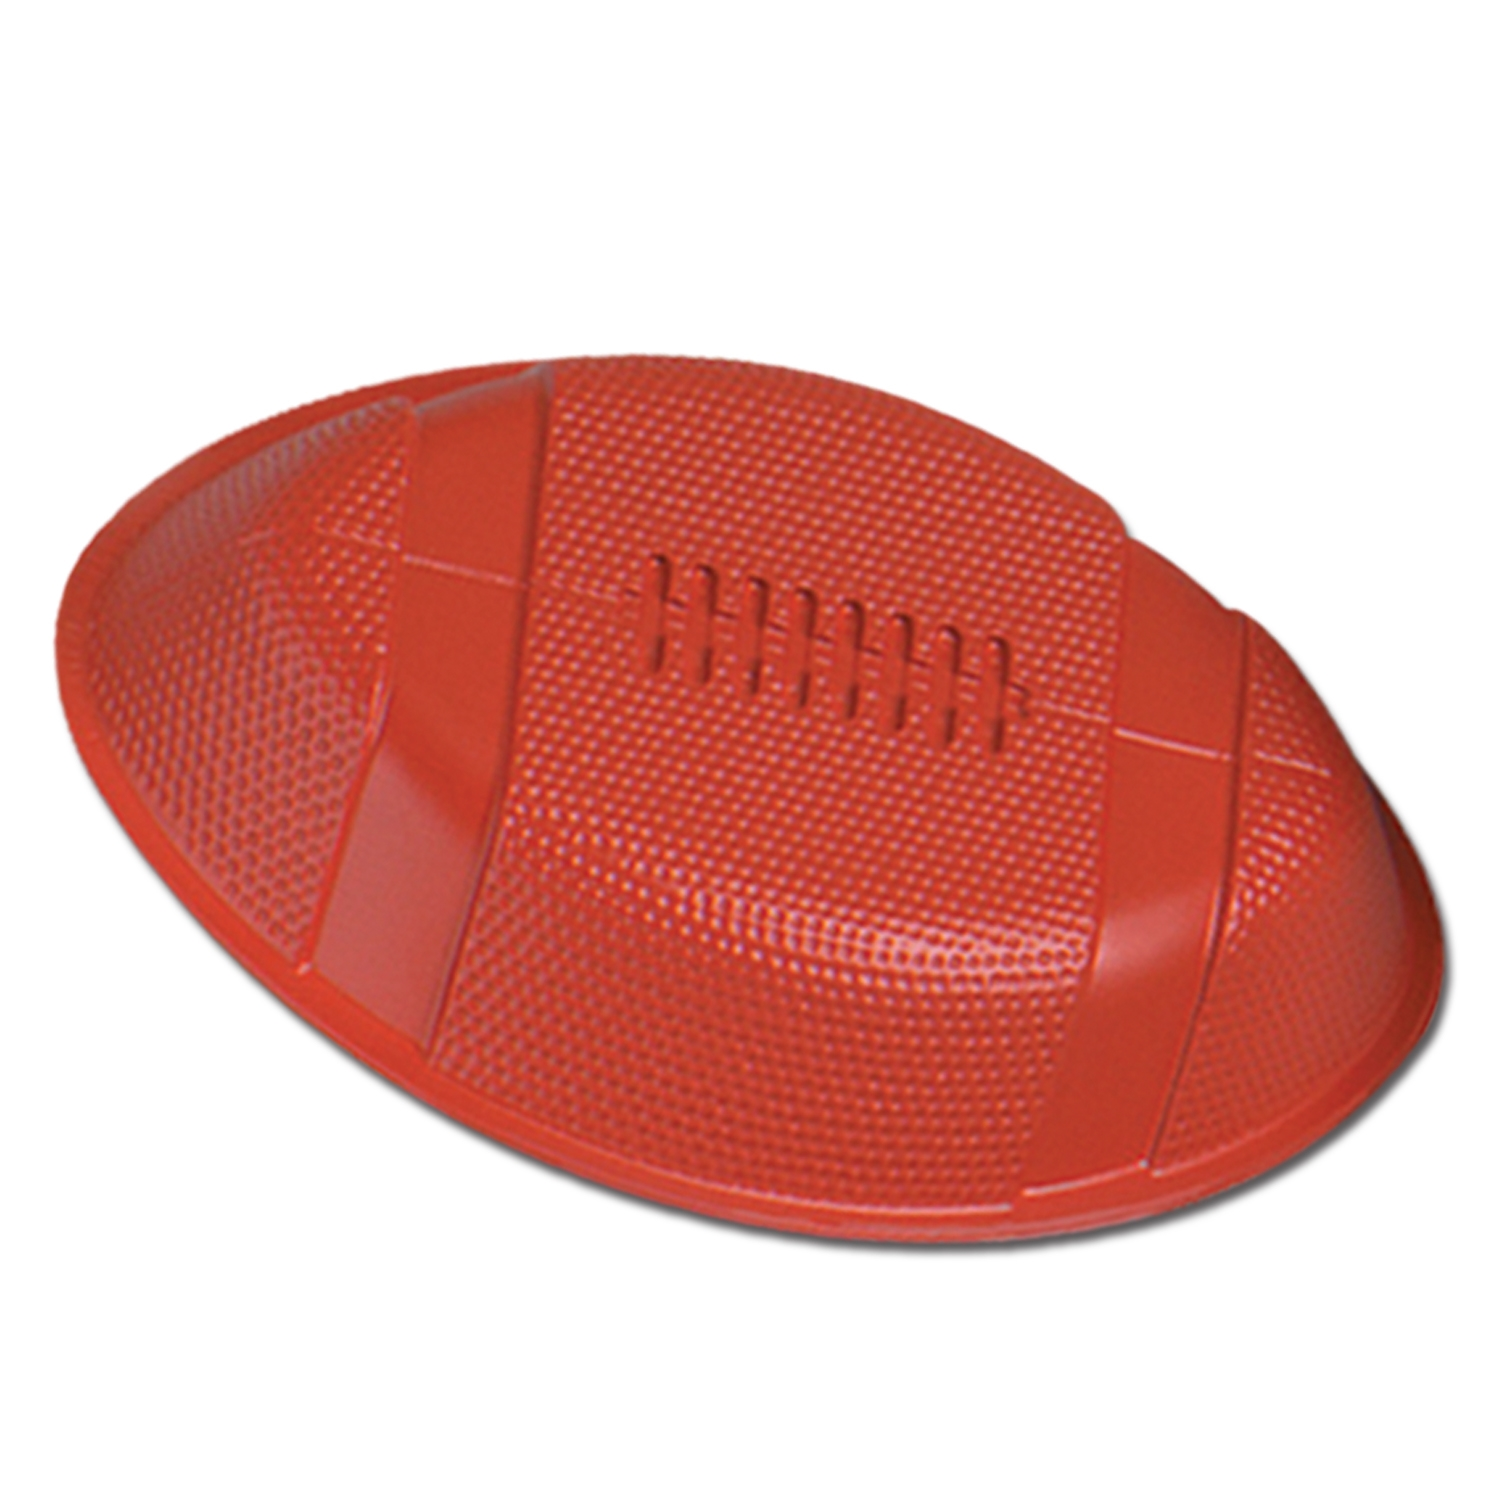 Plastic Football Tray (Pack of 24) Football Tray, Plastic Tray, Game Day Decor, Wholesale party supplies, Inexpensive table decor, Cheap football, Football decorations